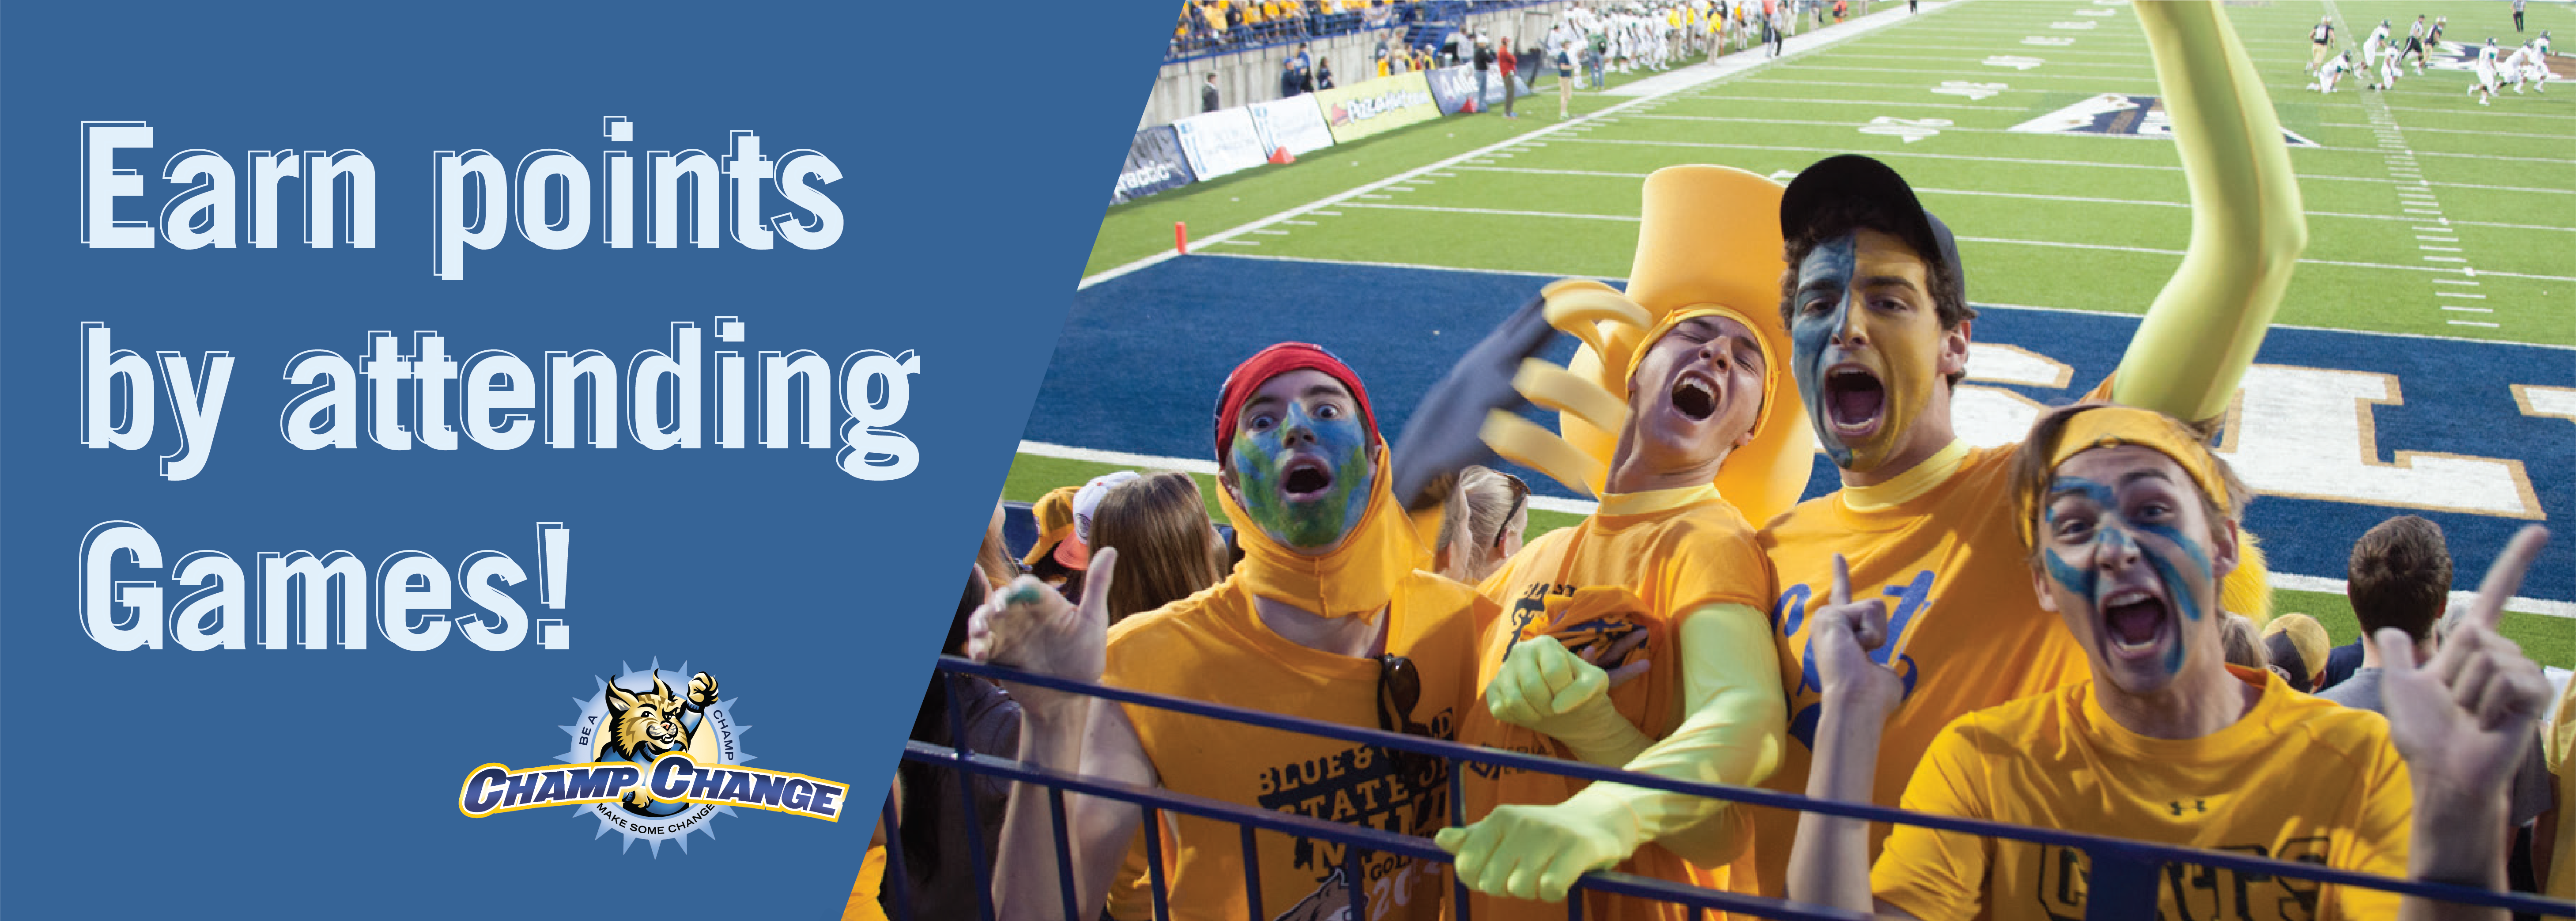 Earn points by attending games!